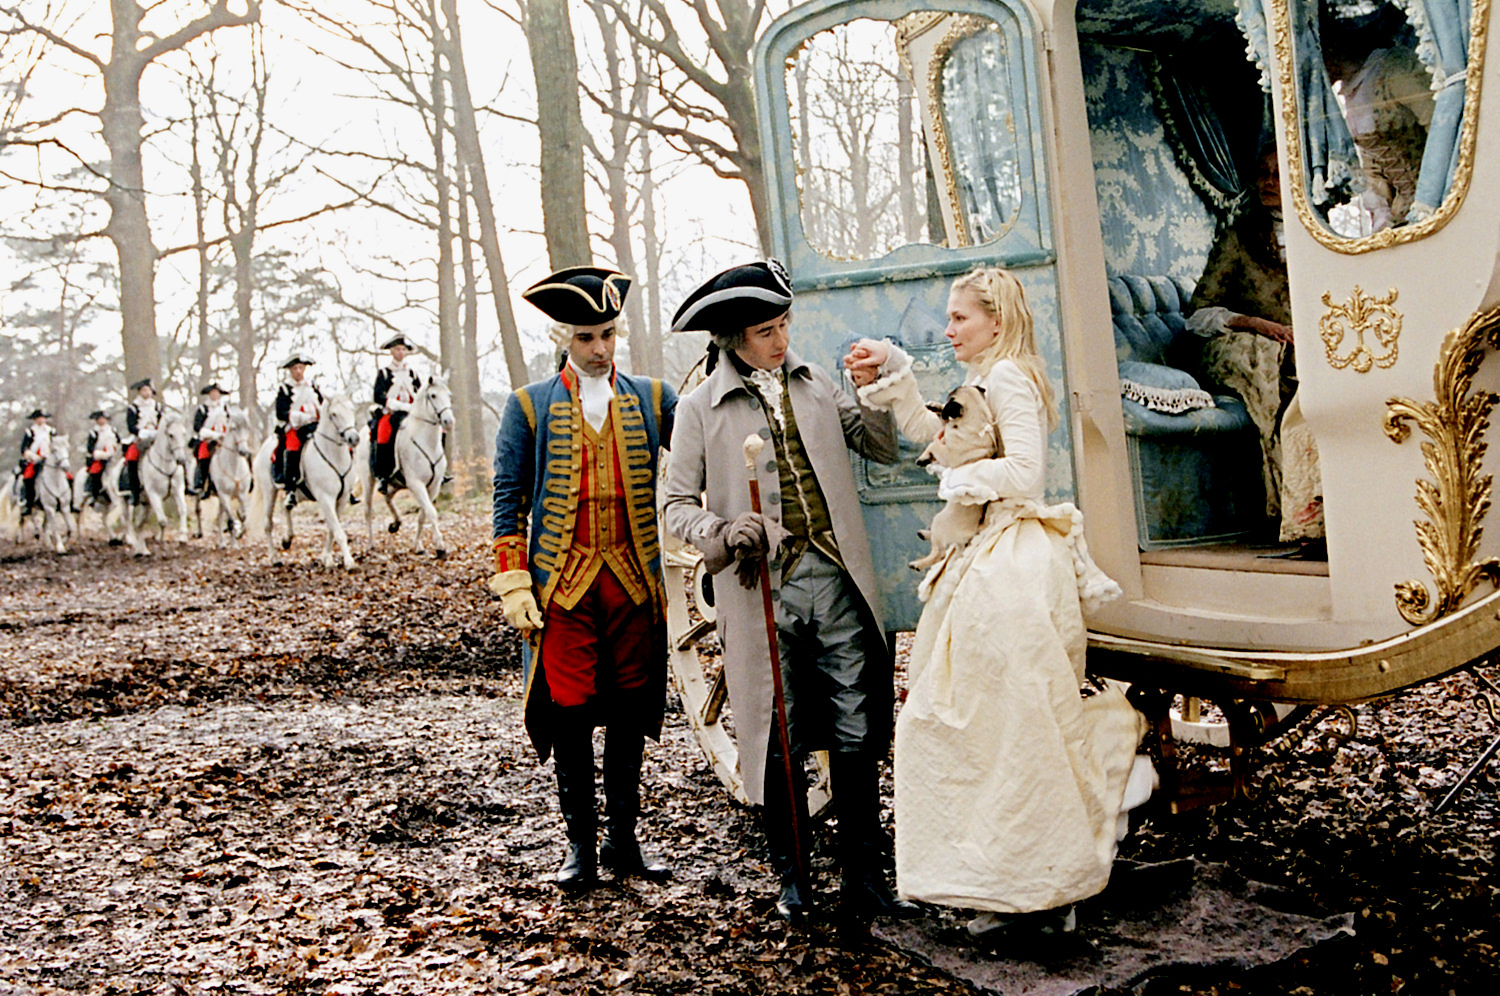 essay on marie antoinette the movie Coppola recognizes that marie antoinette's tastes drove her away from mundane affairs of state much of the movie the queen drools over elaborate food, dress, and men meanwhile she's oblivious to france's deteriorating political conditions.